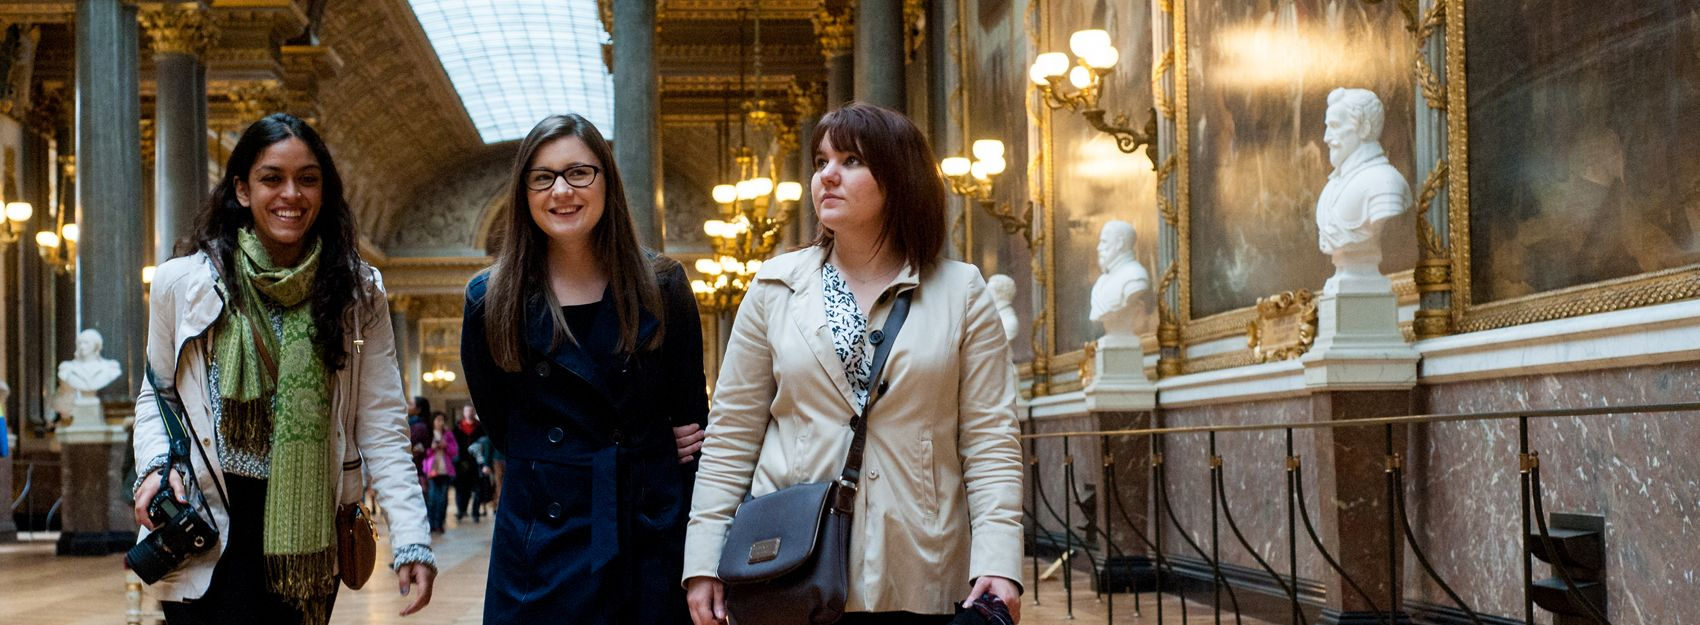 Paris internship students at a museum